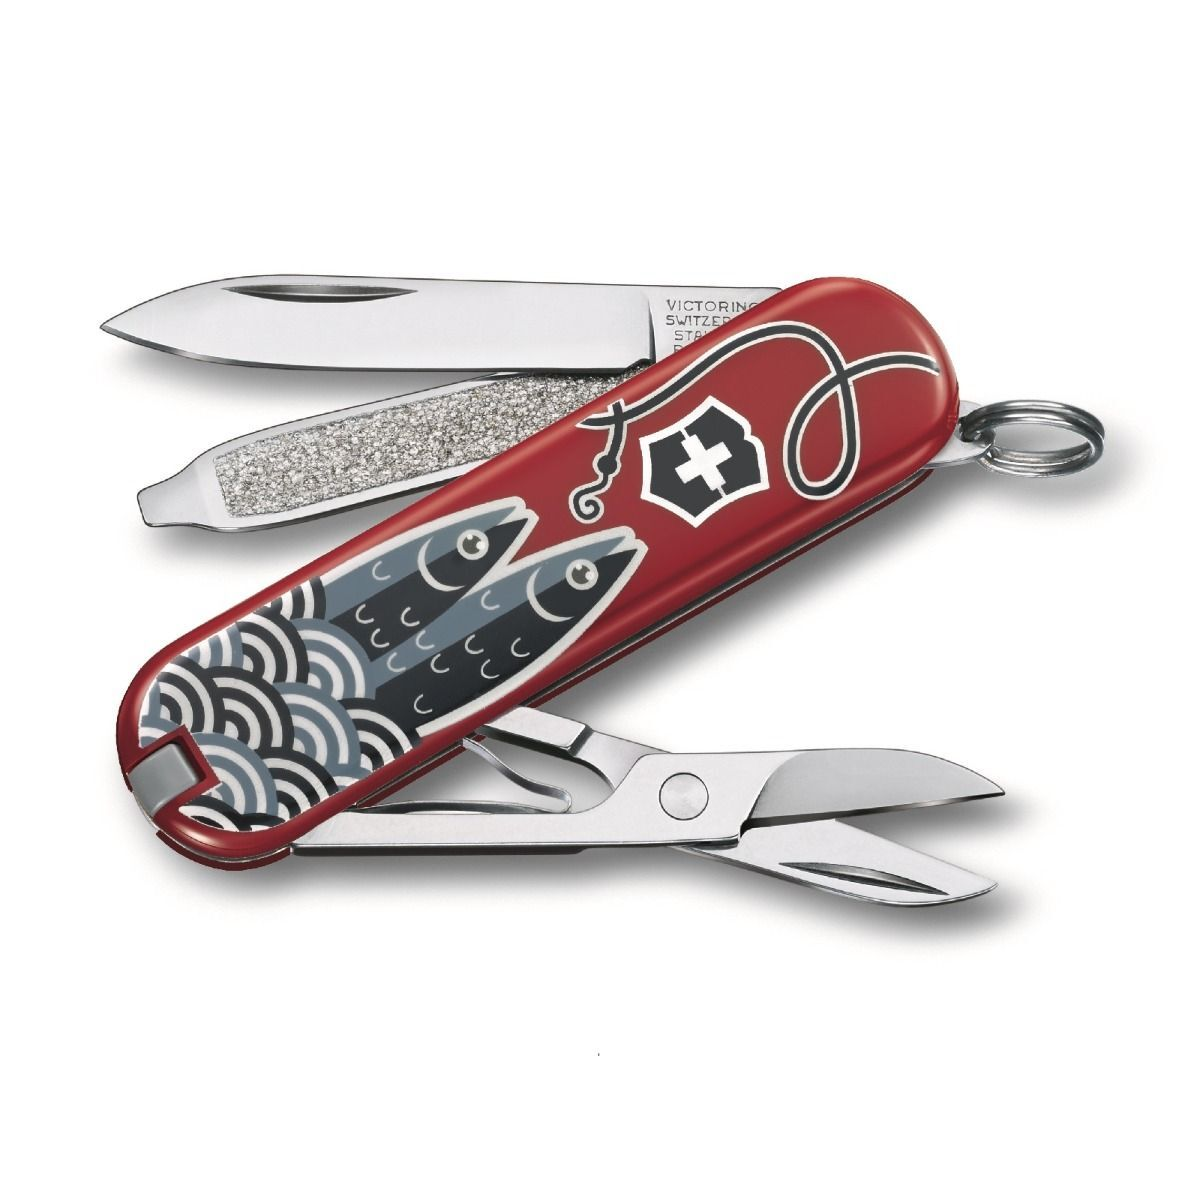 VICTORINOX CLASSIC LIMITED EDITION 2019 SWISS ARMY KNIFE